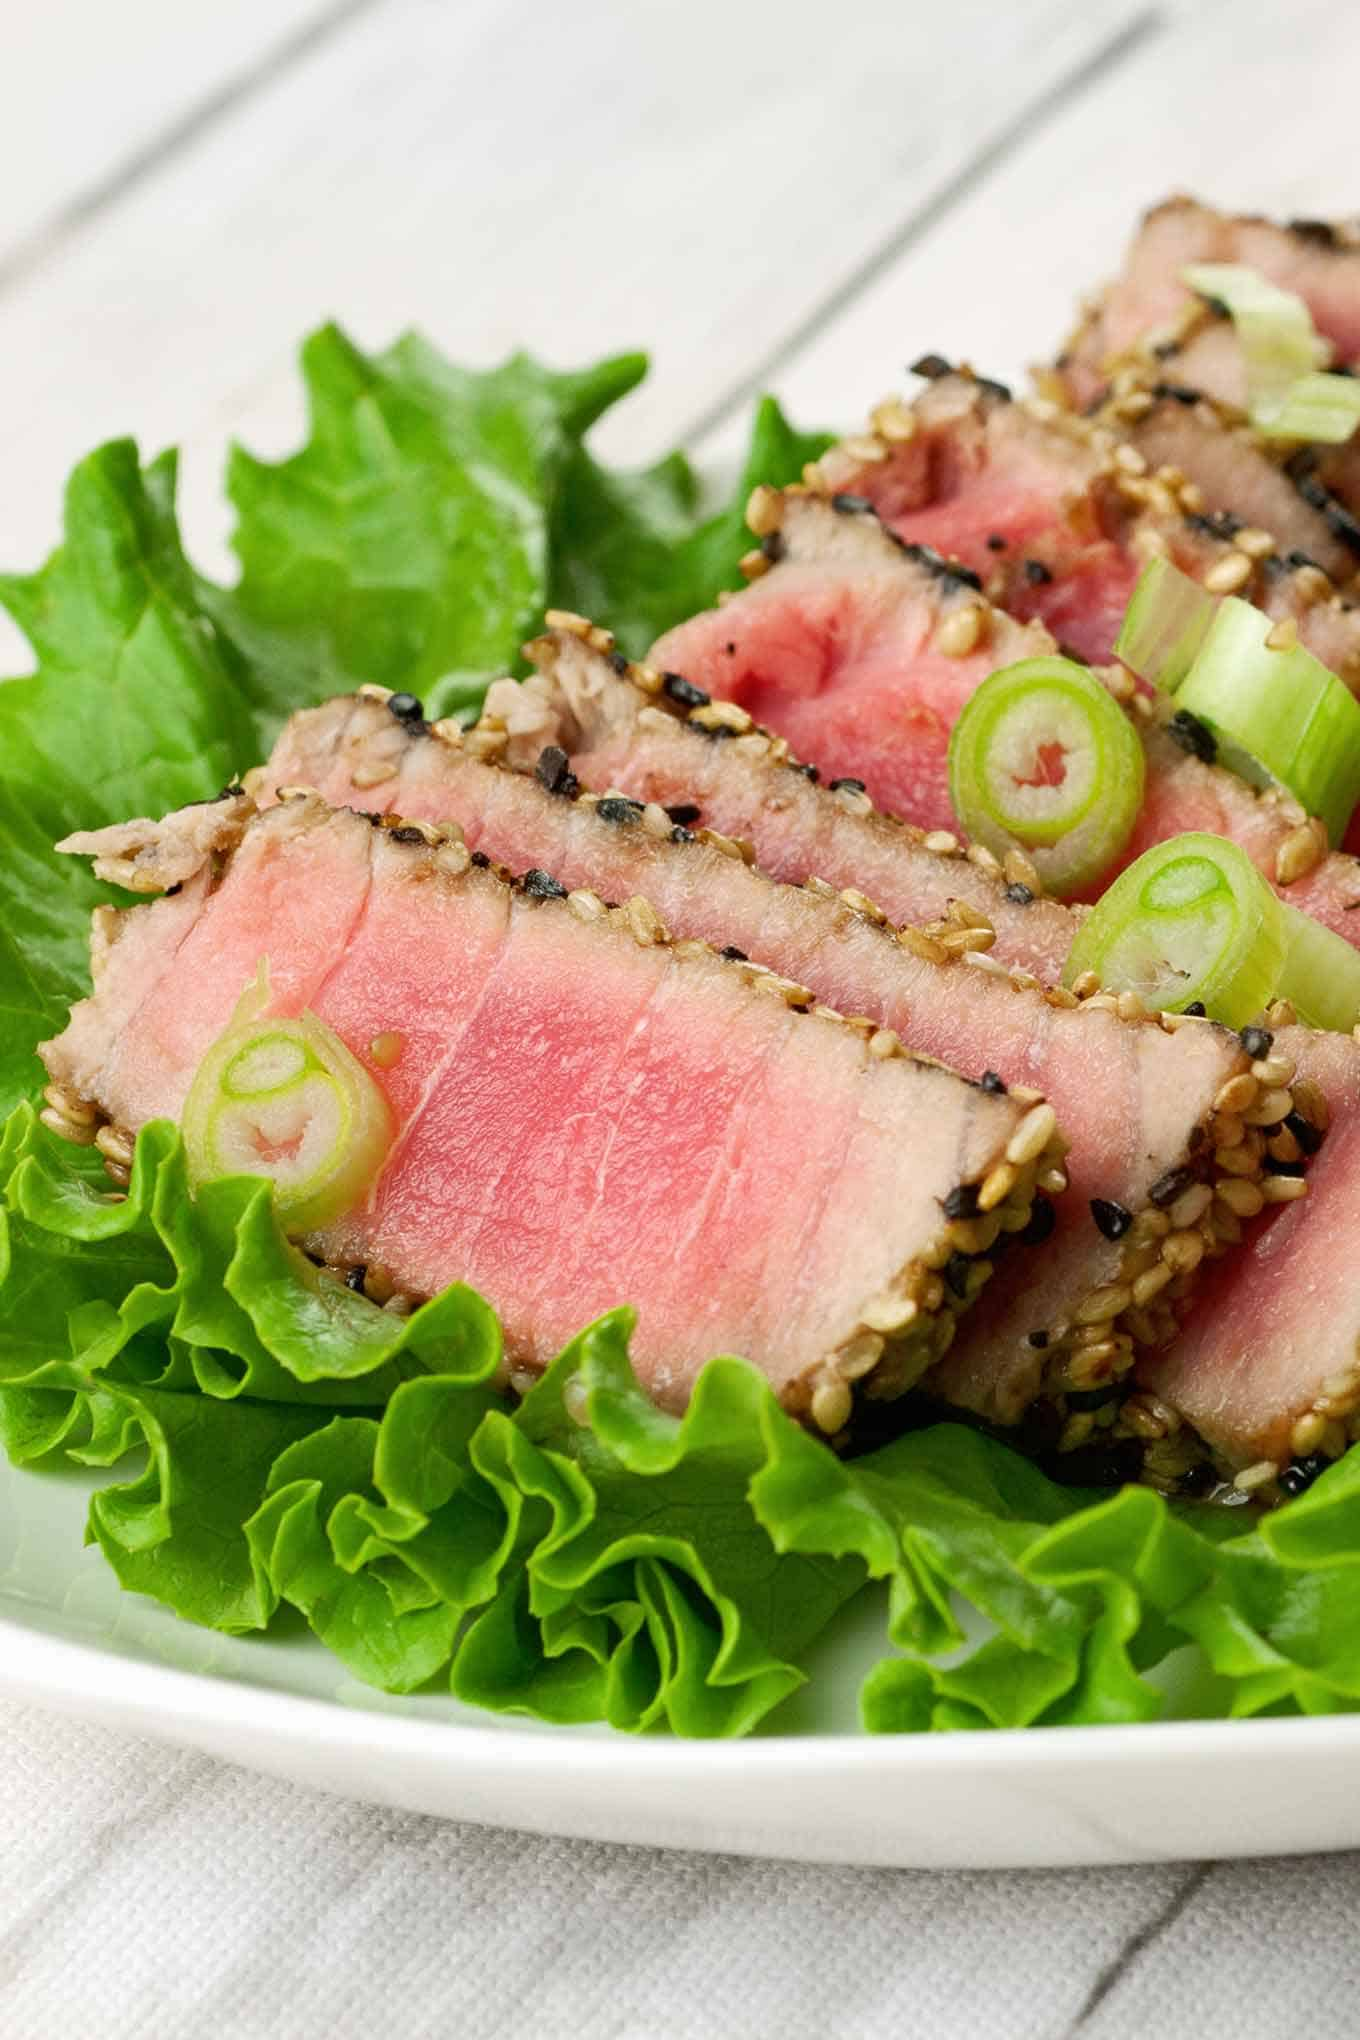 Sliced sesame-crusted tuna served over bibb lettuce and garnished with chopped scallions.